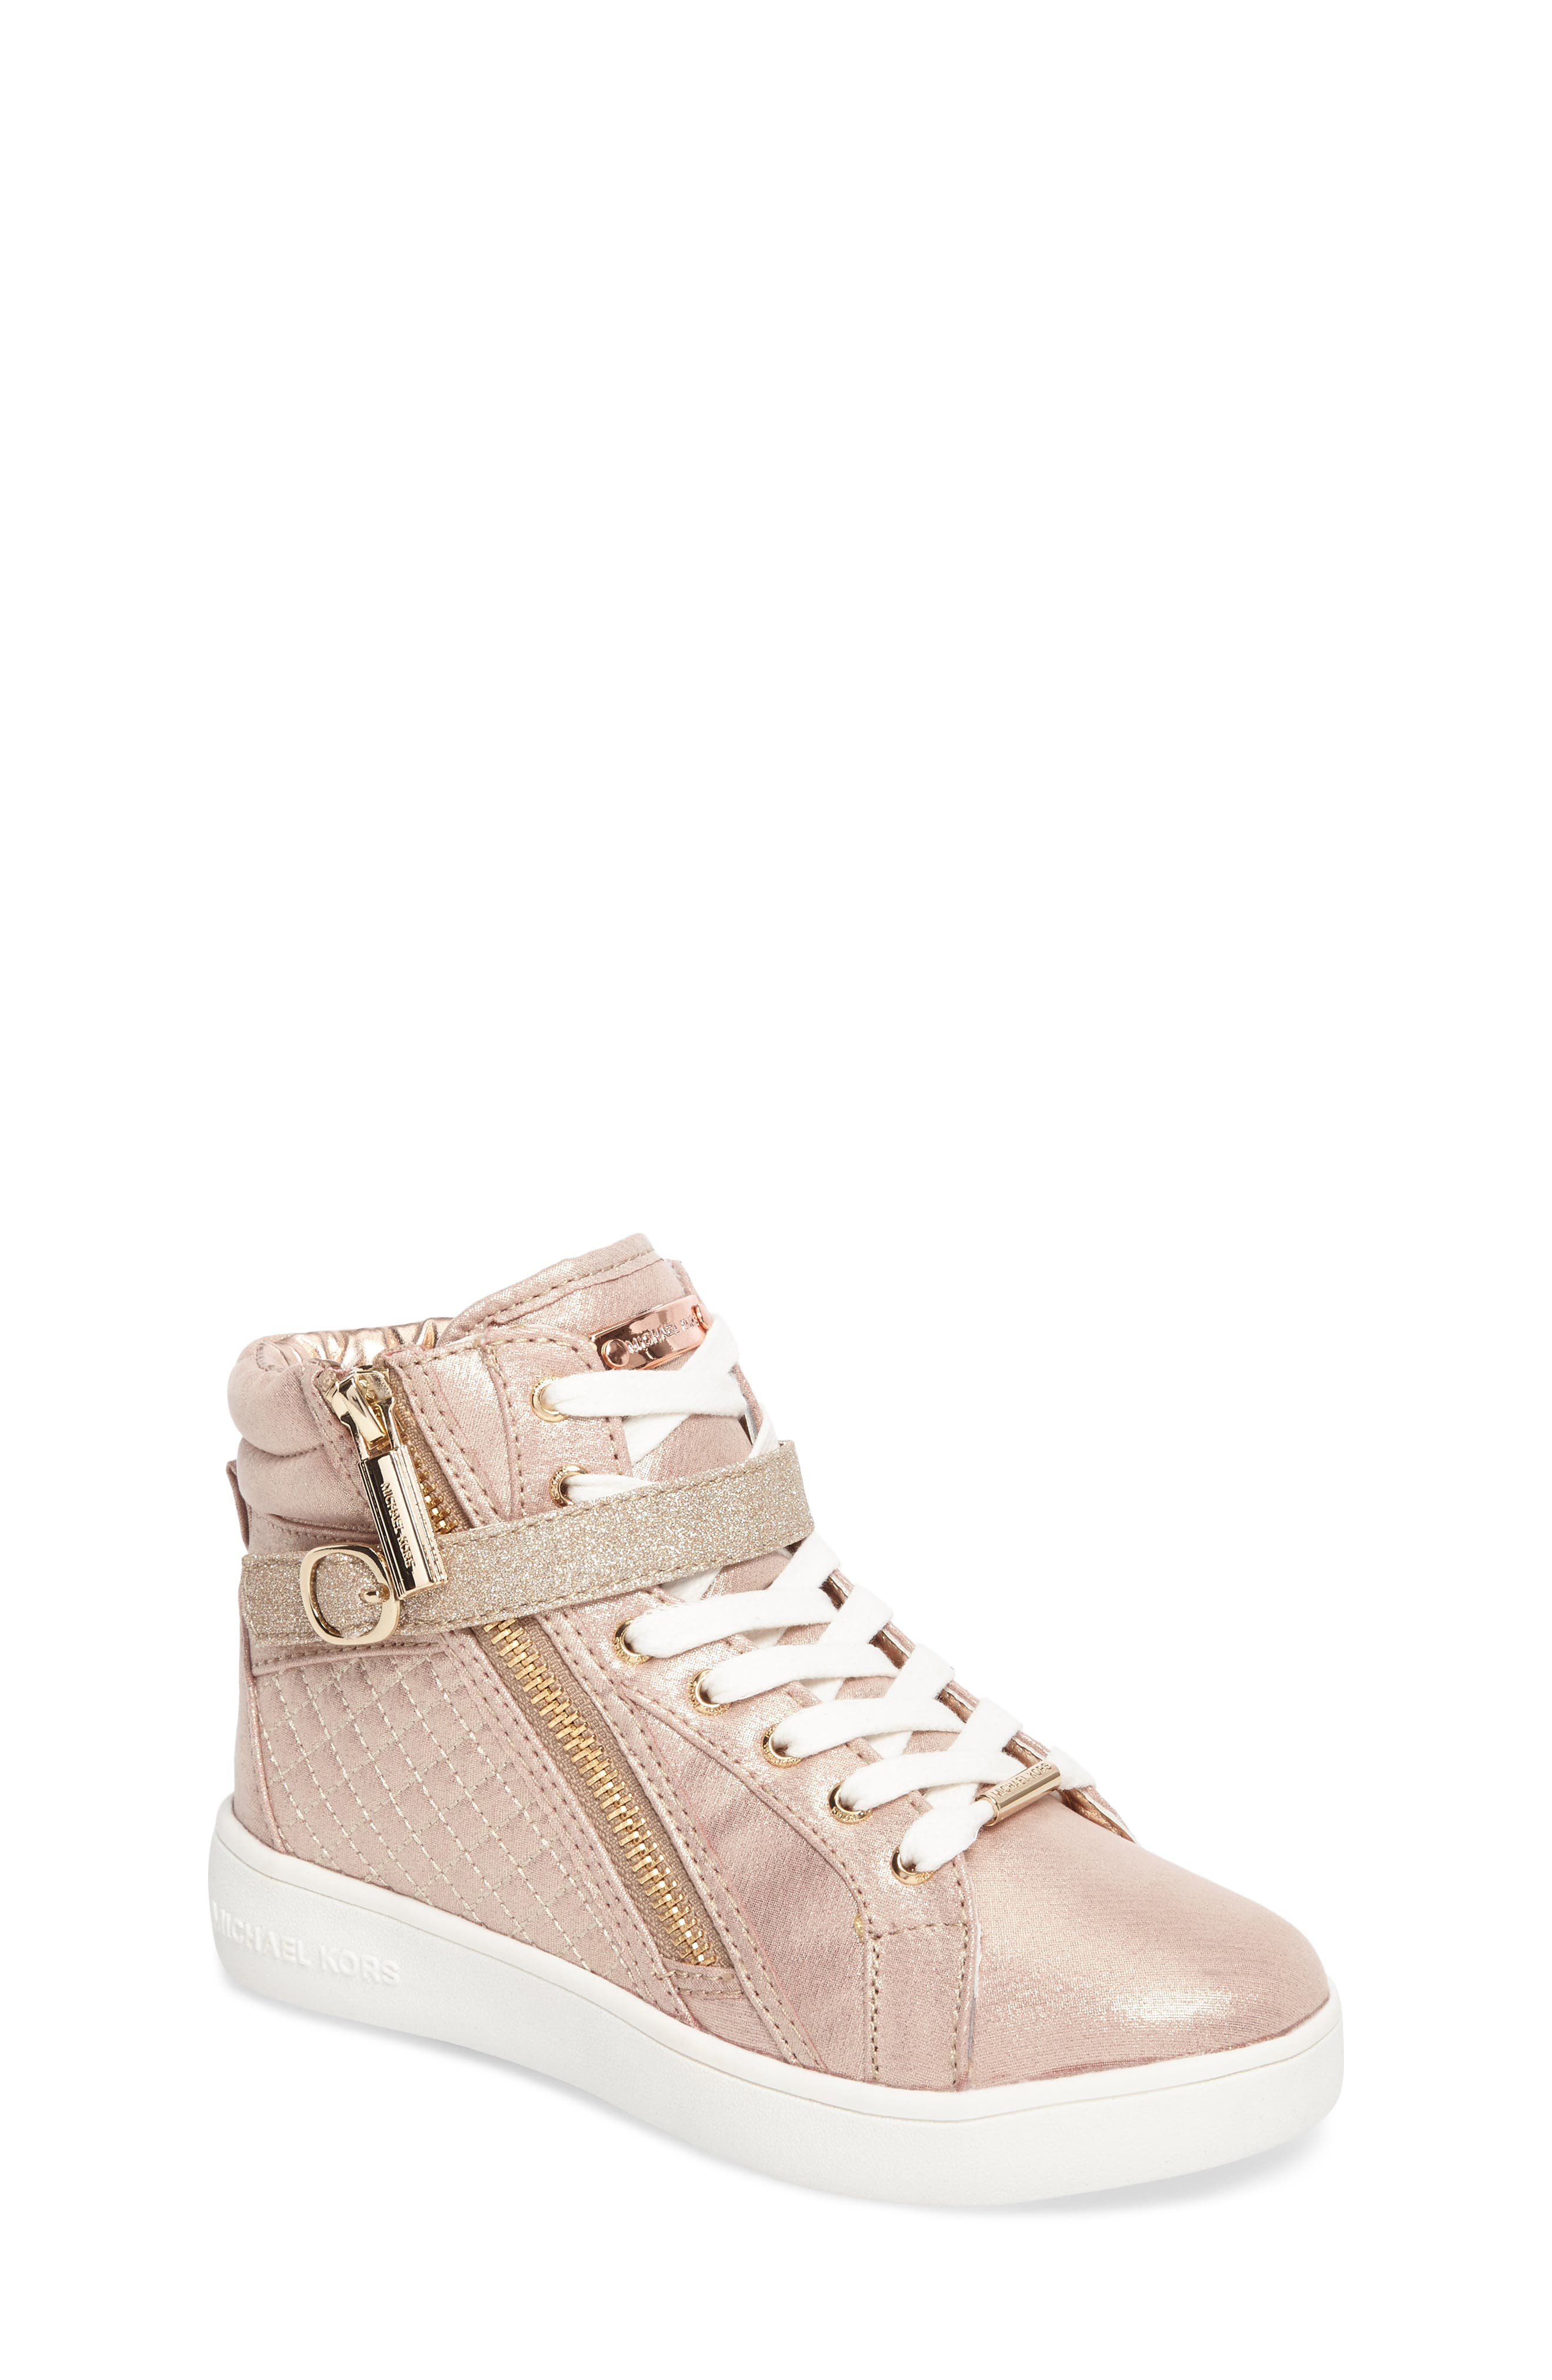 Ivy Rio Glittery High Top Sneaker,                         Main,                         color, 220